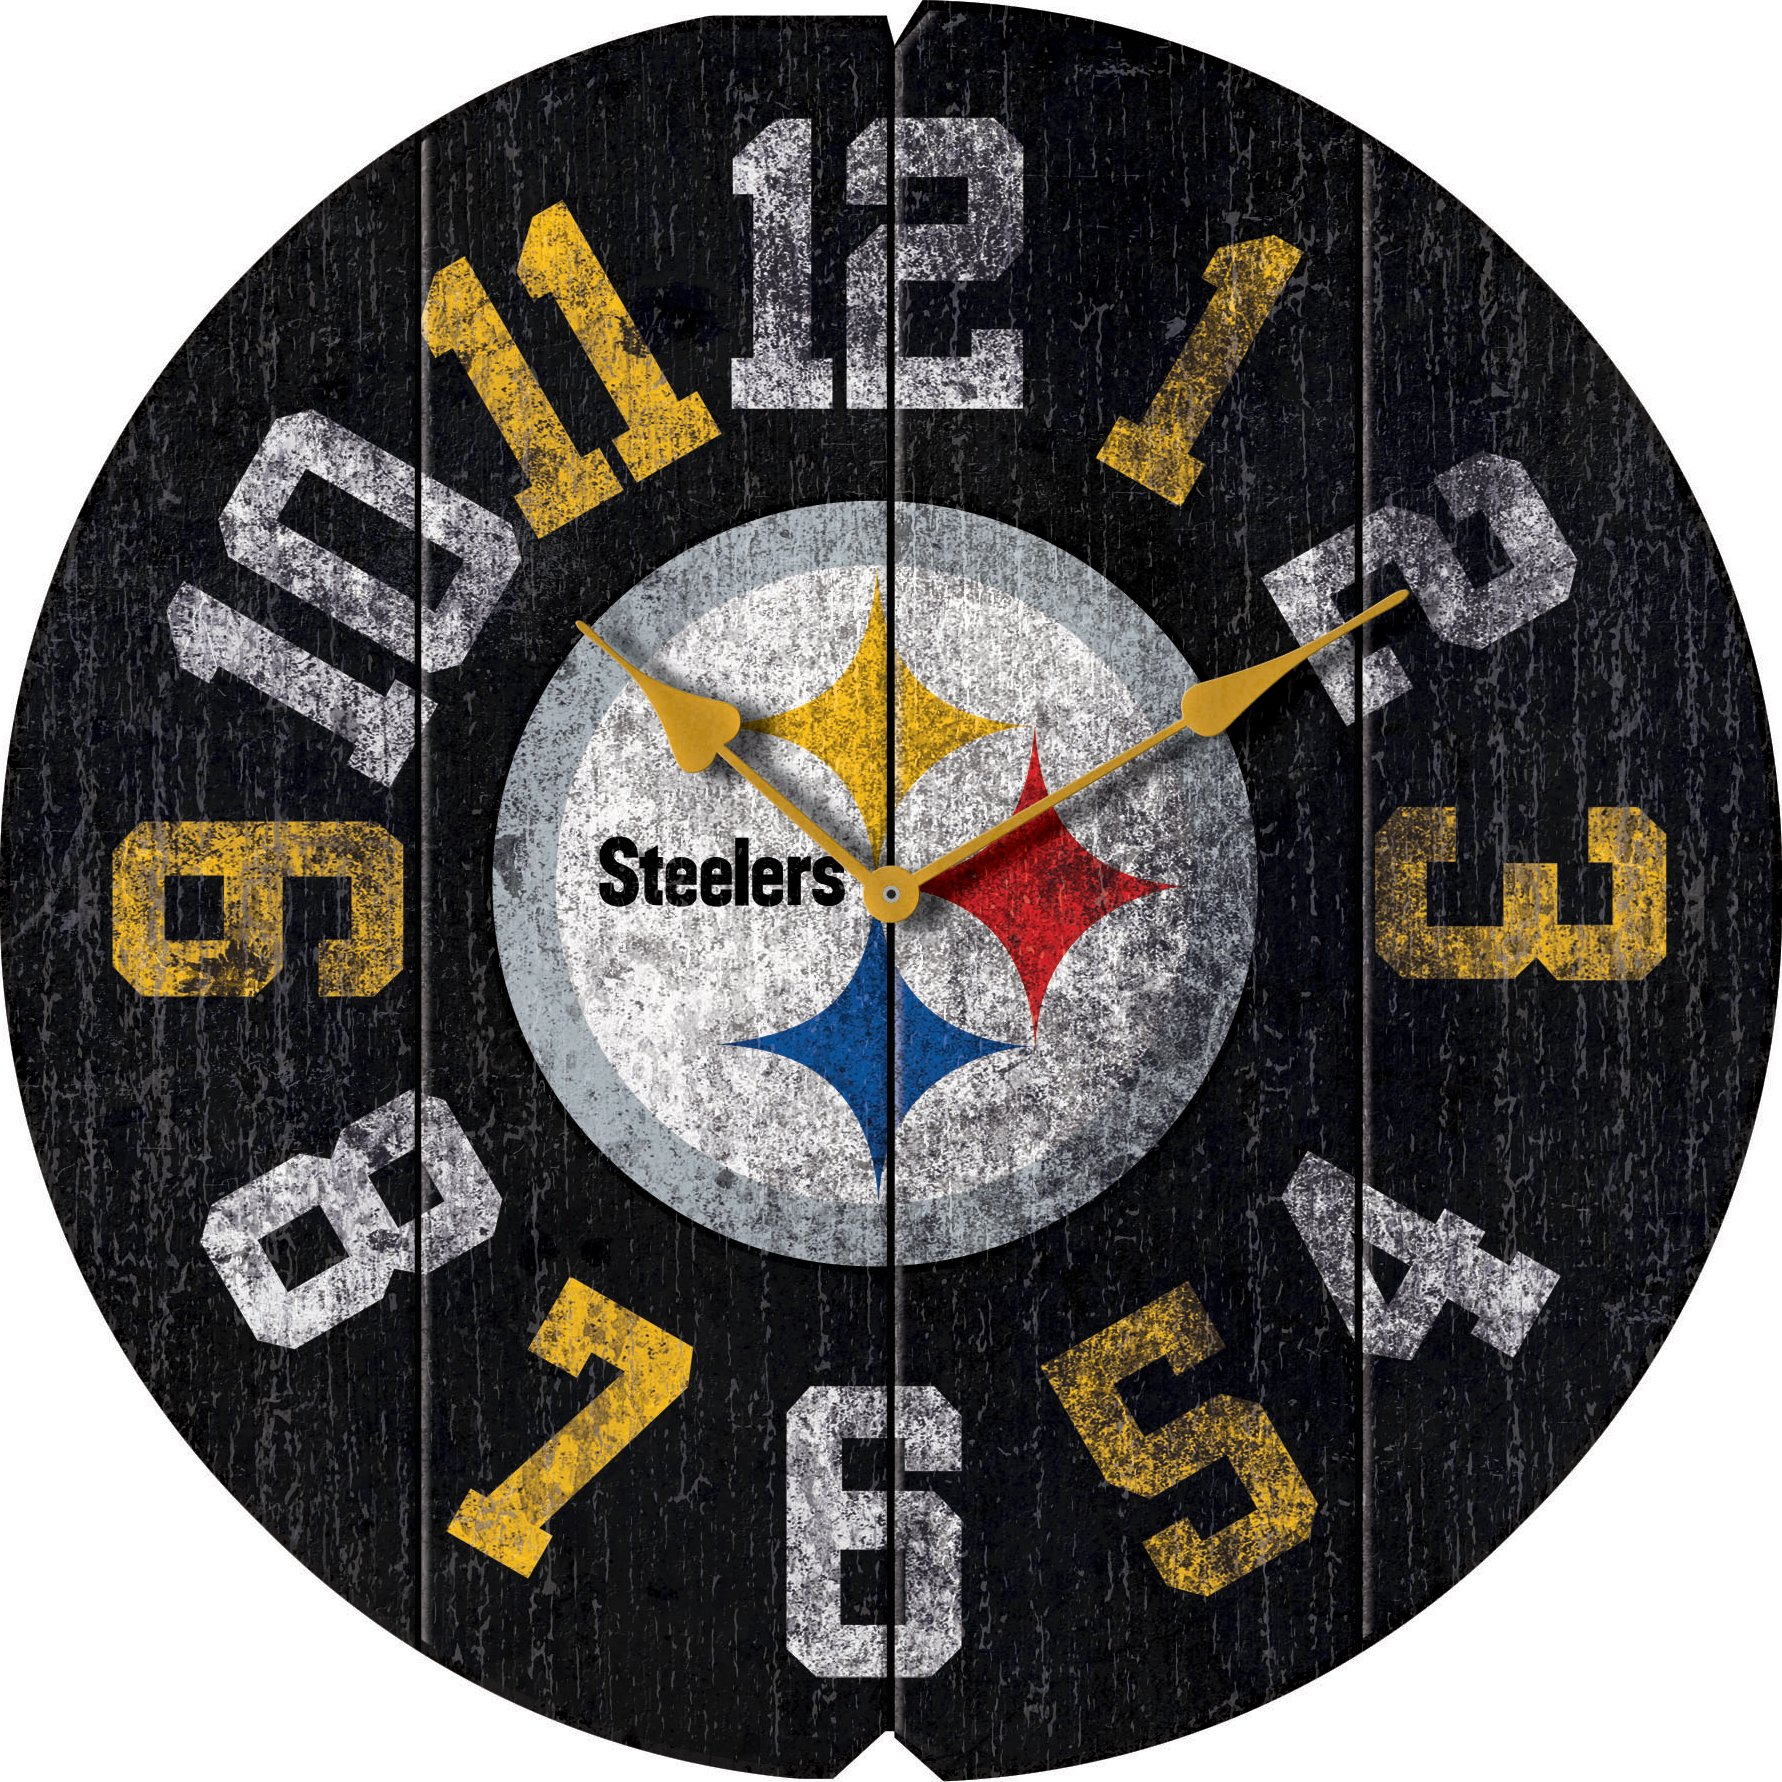 Imperial Officially Licensed NFL Merchandise: Vintage Round Clock, Pittsburgh Steelers by Imperial